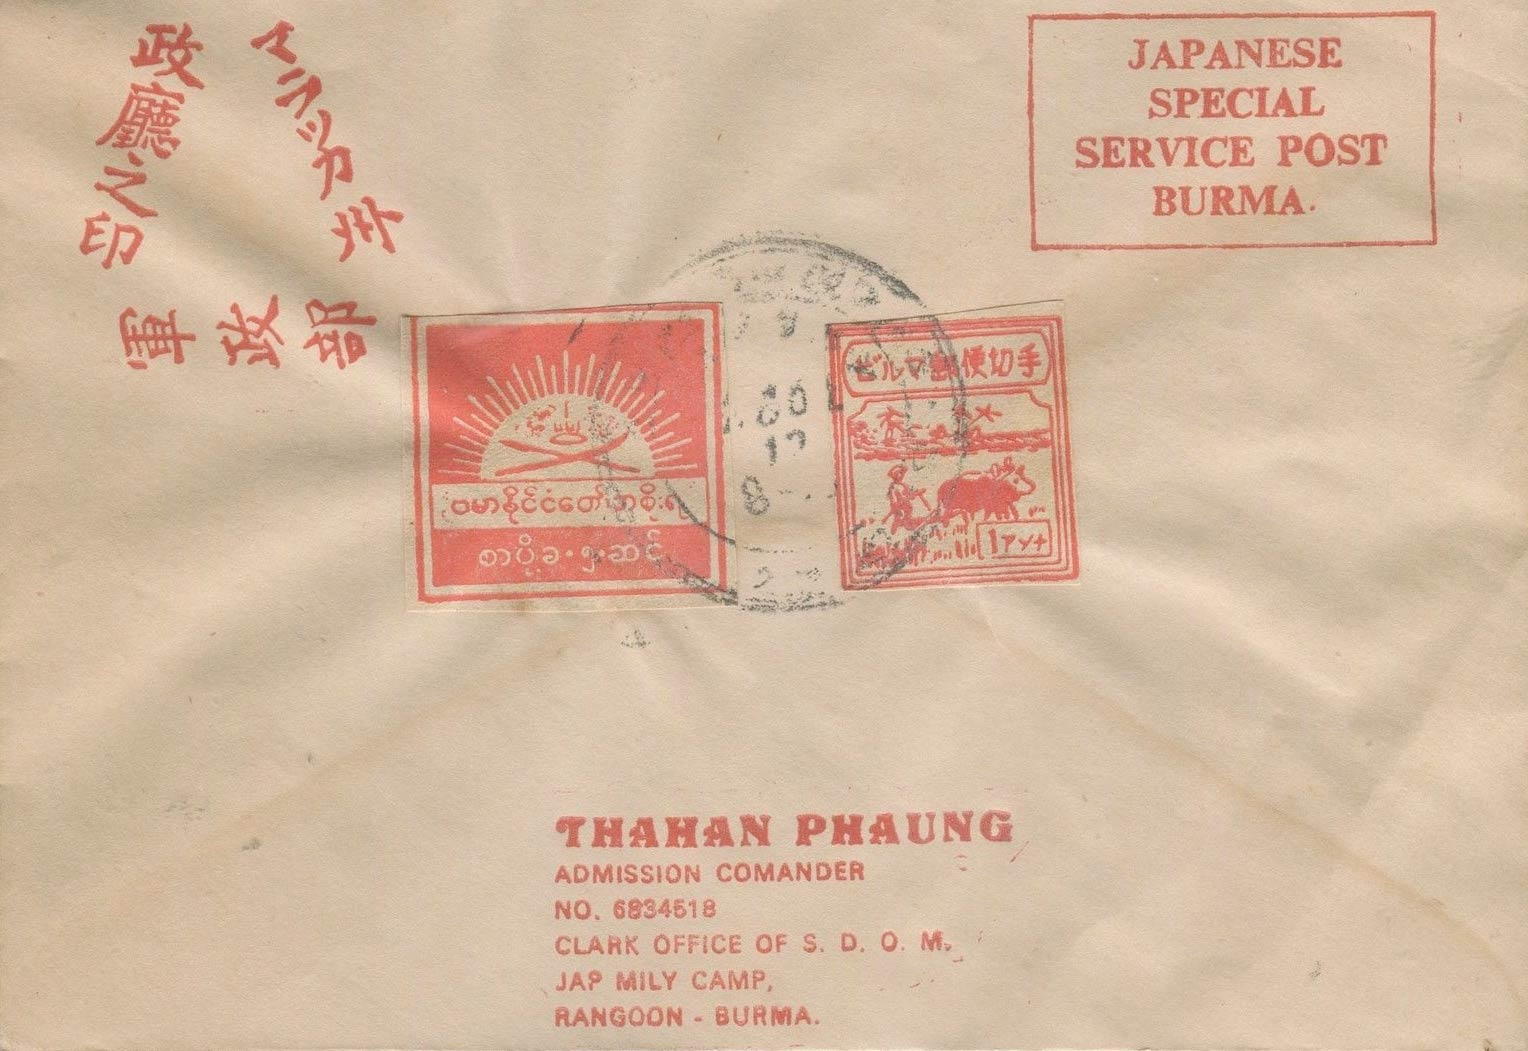 Burma_Japanese-Special-Service-Post_Cover_Forgery12